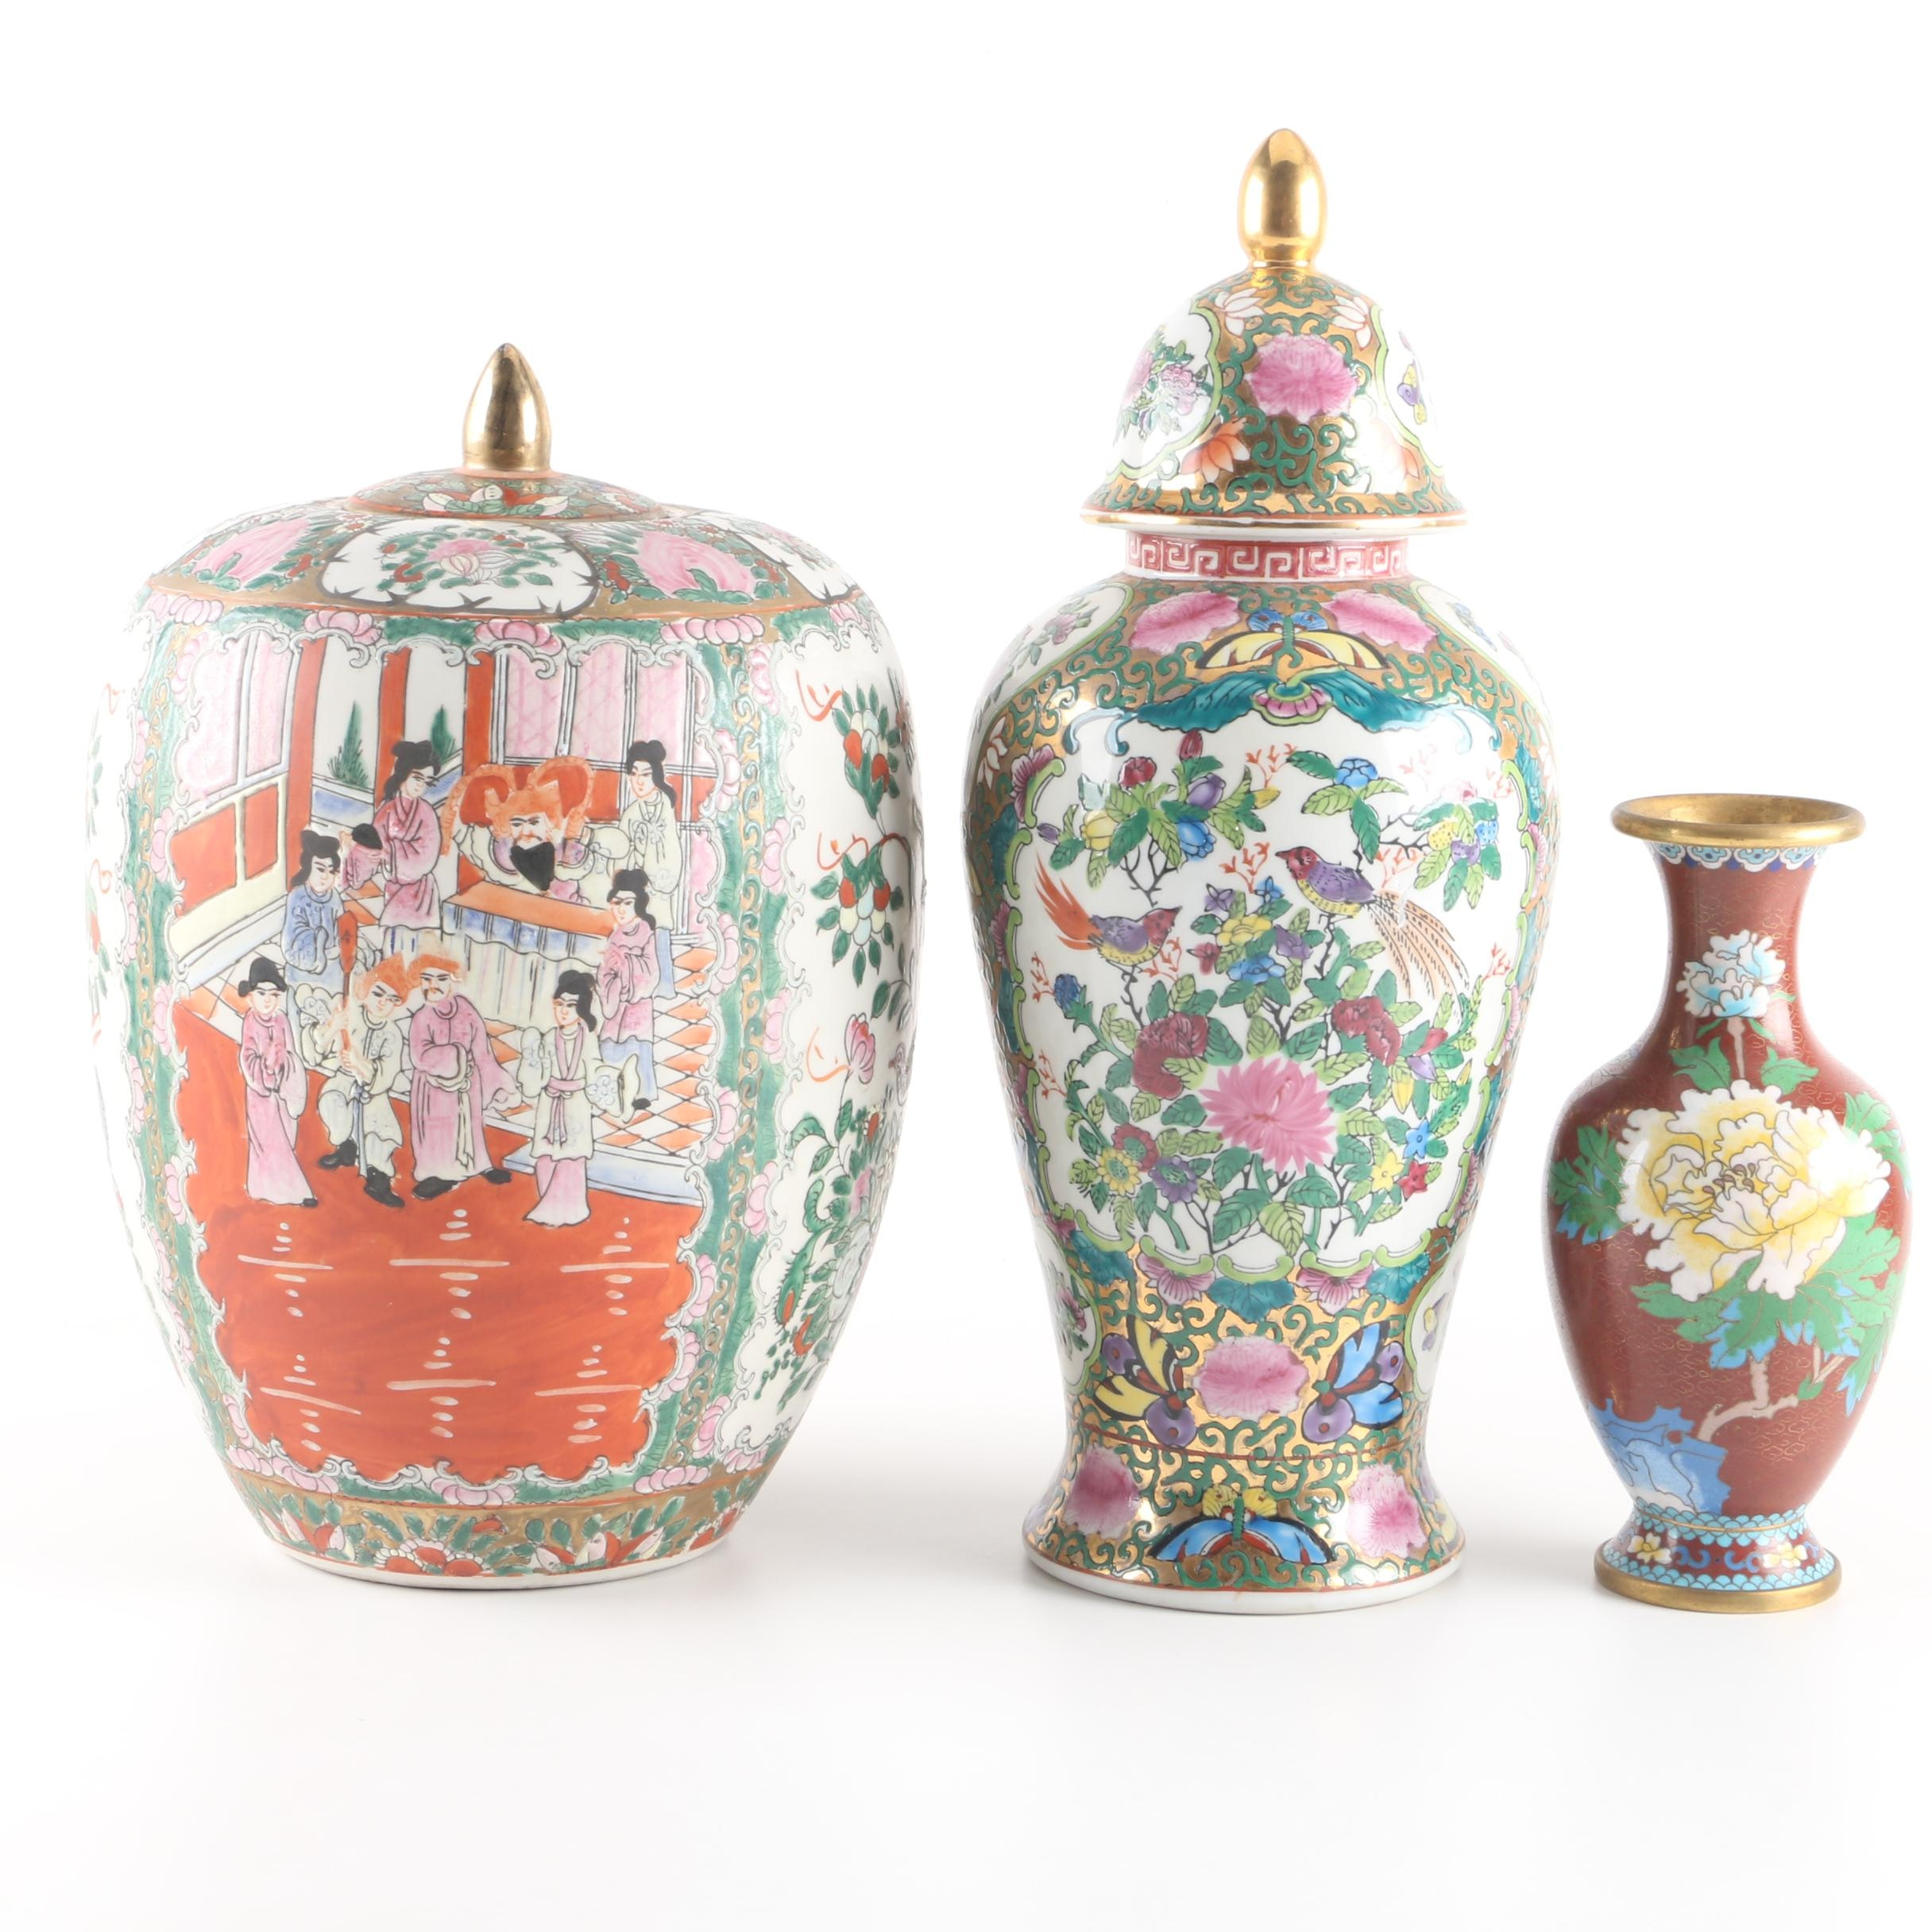 Chinese Cloisonne Vase with Ceramic Jars